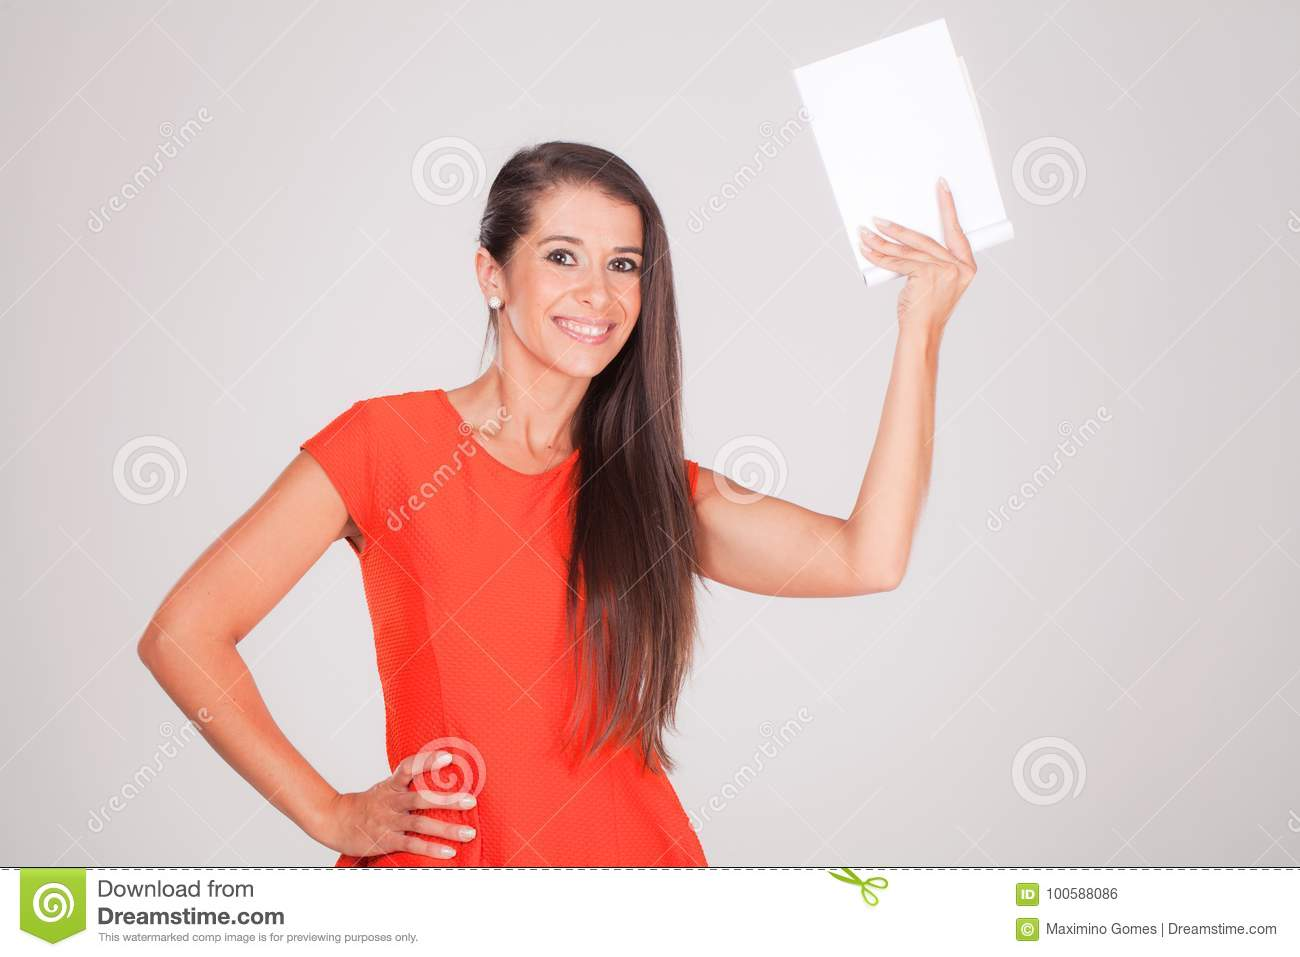 Young woman, smiles holding a notebook